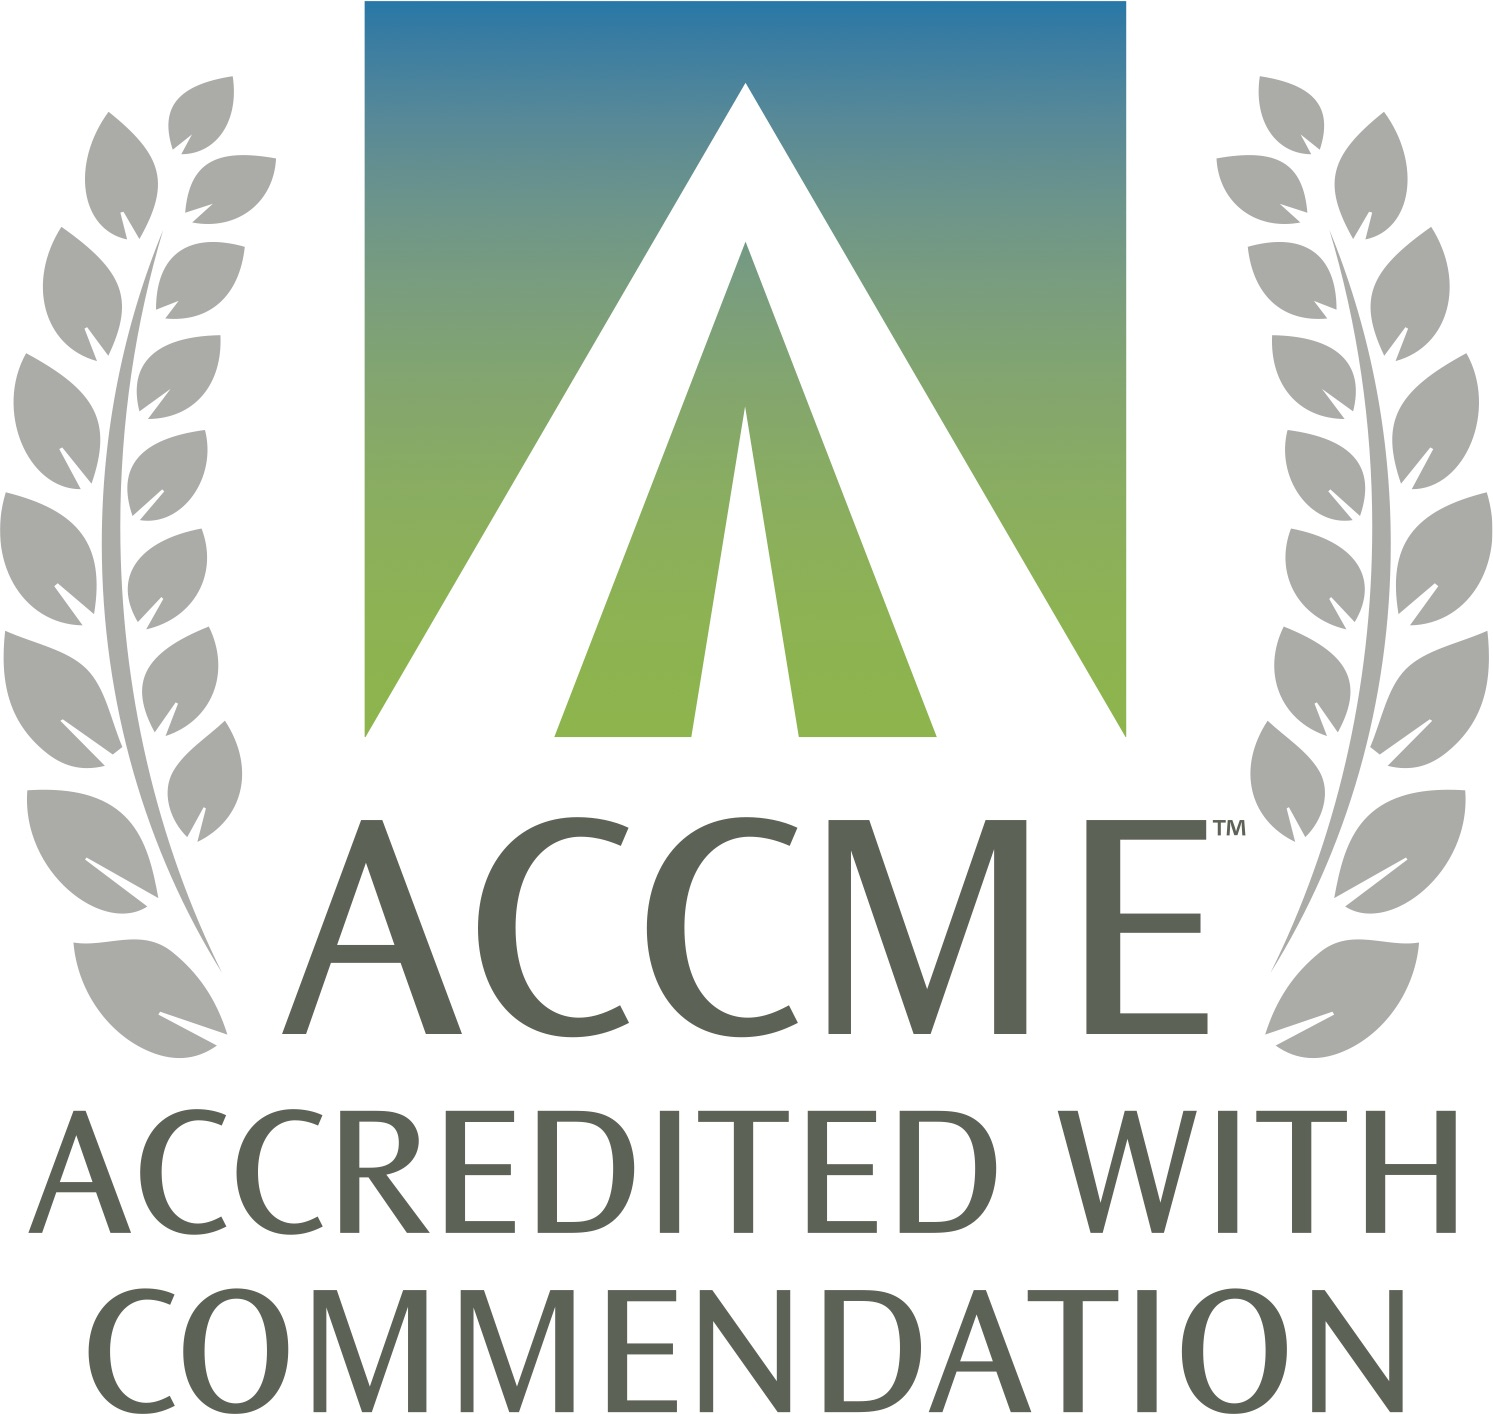 Accreditation Council for Continuing Medical Education (ACCME)